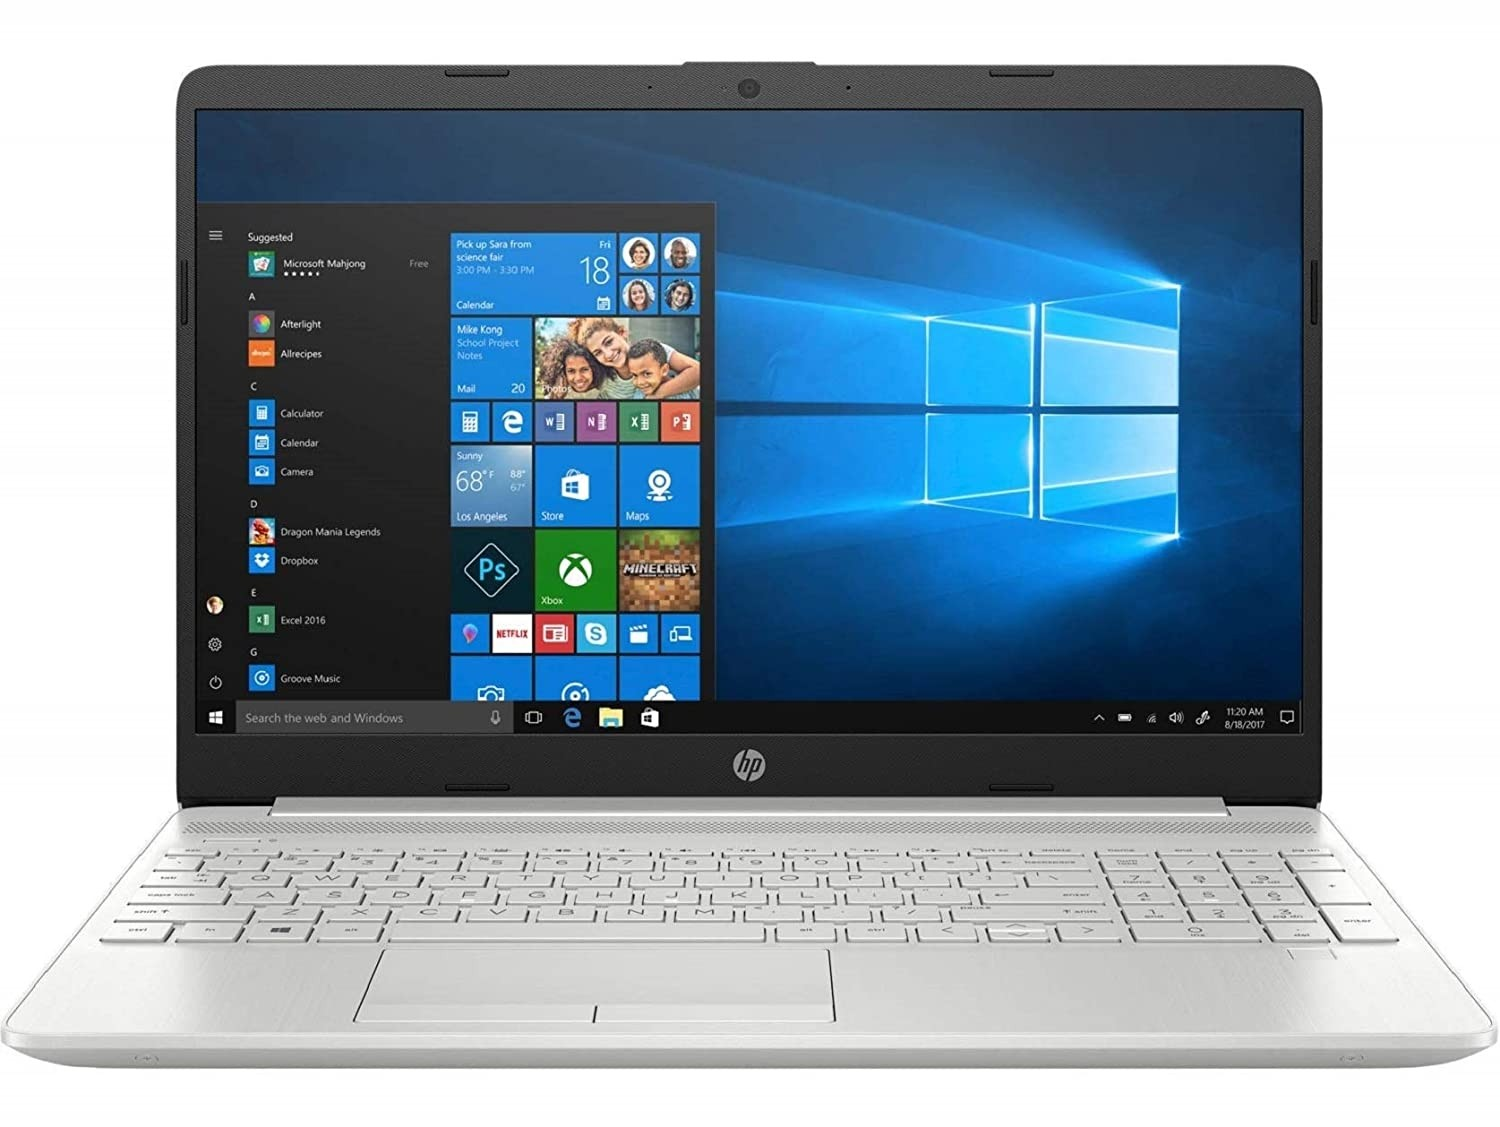 Refurbished laptops & desktops - HP Laptop 15S-Du0096Tu In-Core I5-8265U 8TH Gen/8GB DDR-4/256GB SSD/Windows 10 Home/Intel UHD Graphics 620/2.04 Kg/Natural Silver/15.6-Inch